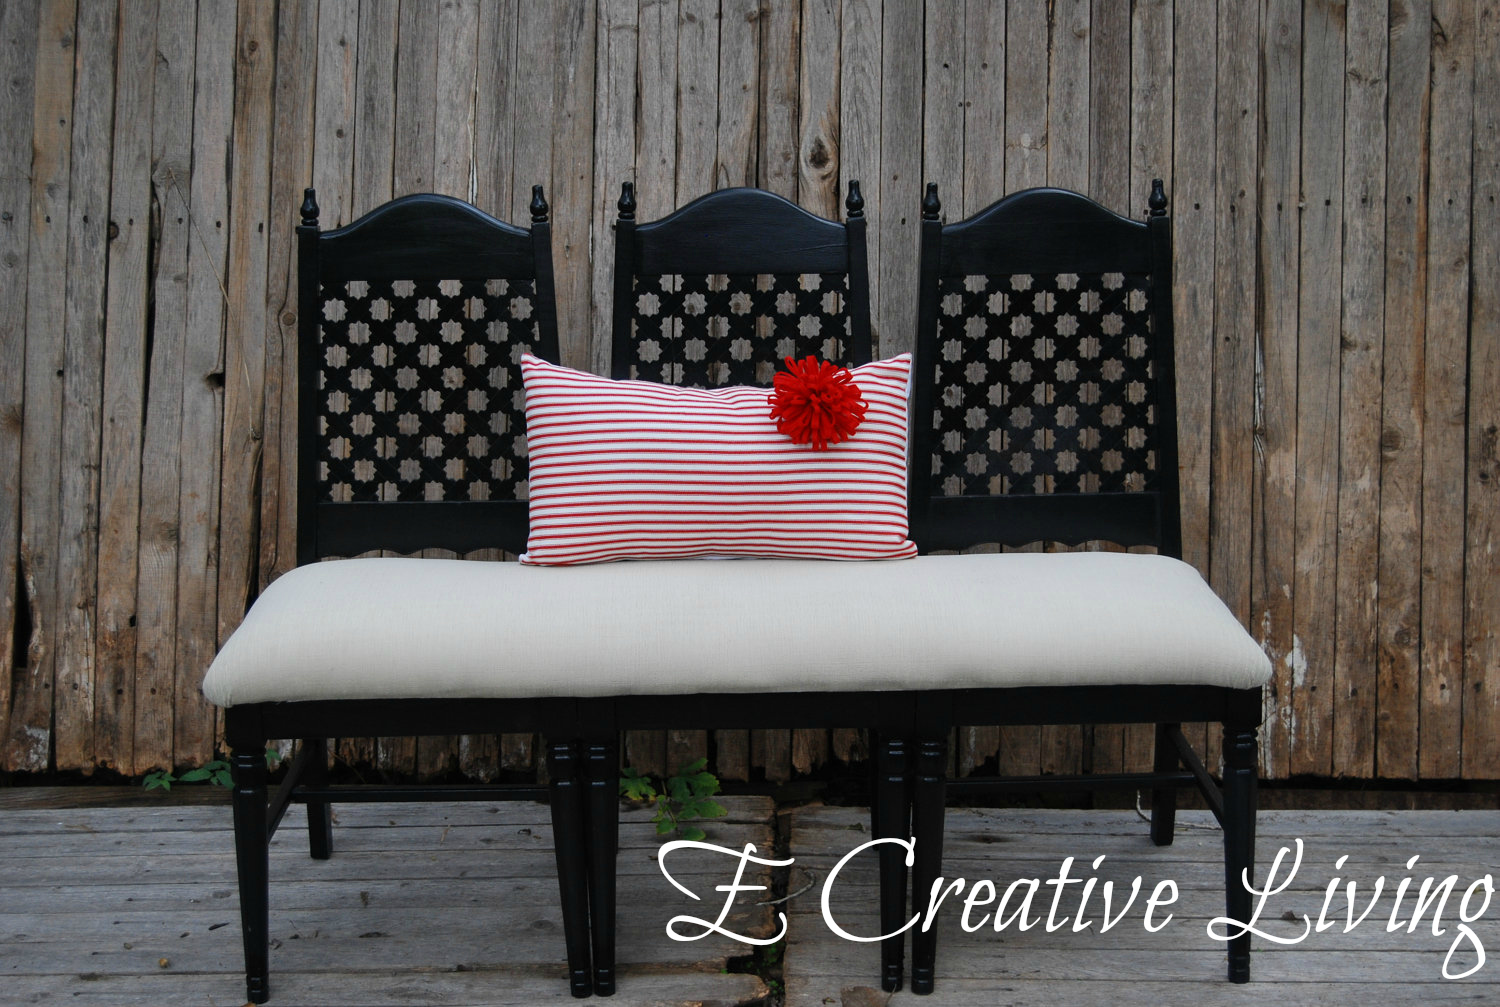 E creative living bohemian moroccan style black one of a kind three seat bench inspired by horchow Moroccan bench